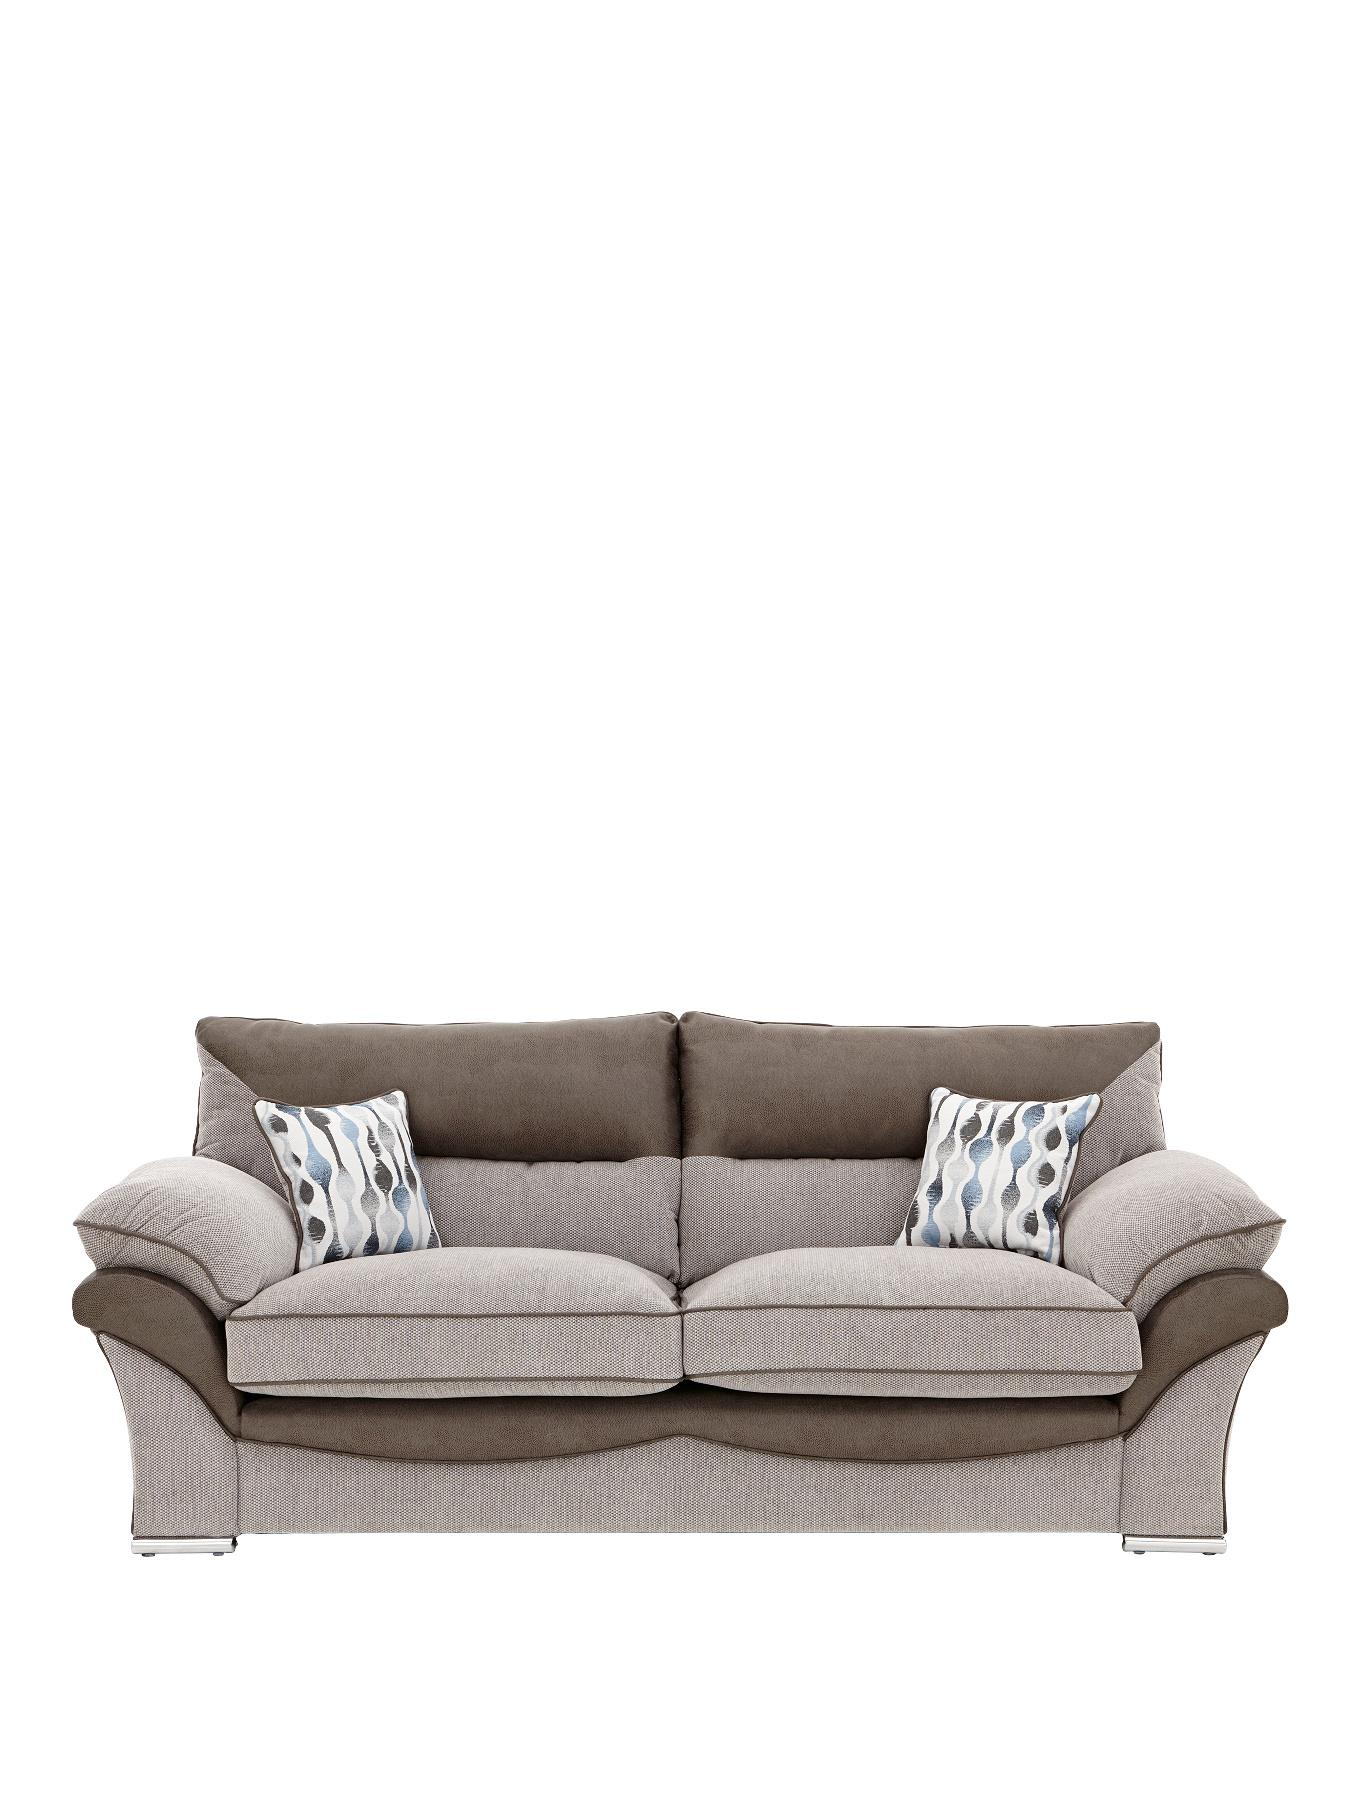 Hampton 3-Seater Sofa - Silver, Silver,Grey at Very, from Littlewoods